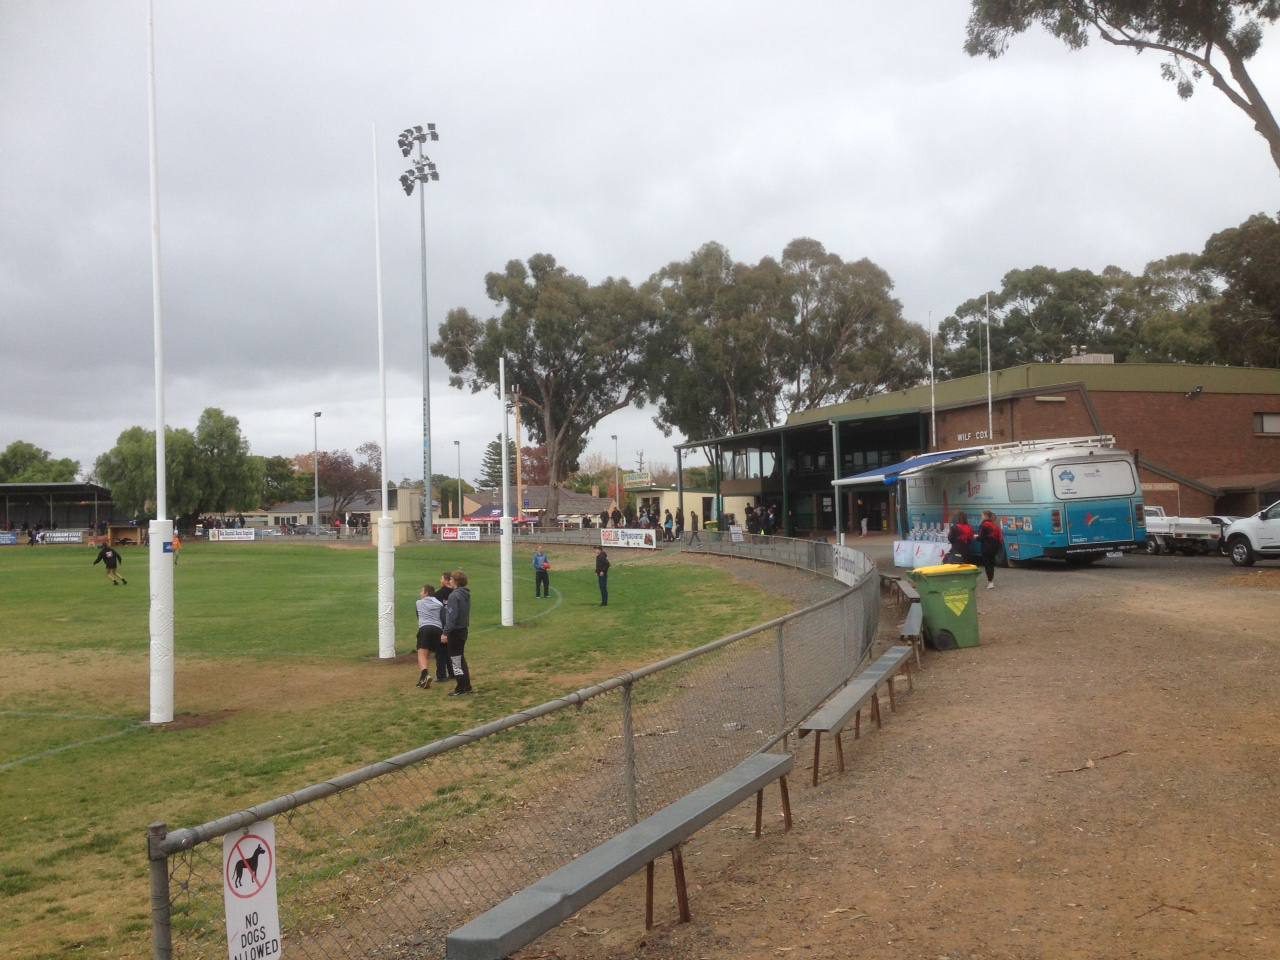 At Kyabram Recreation Reserve for the GVFL clash between the Kyabram Bombers and Benalla Saints.